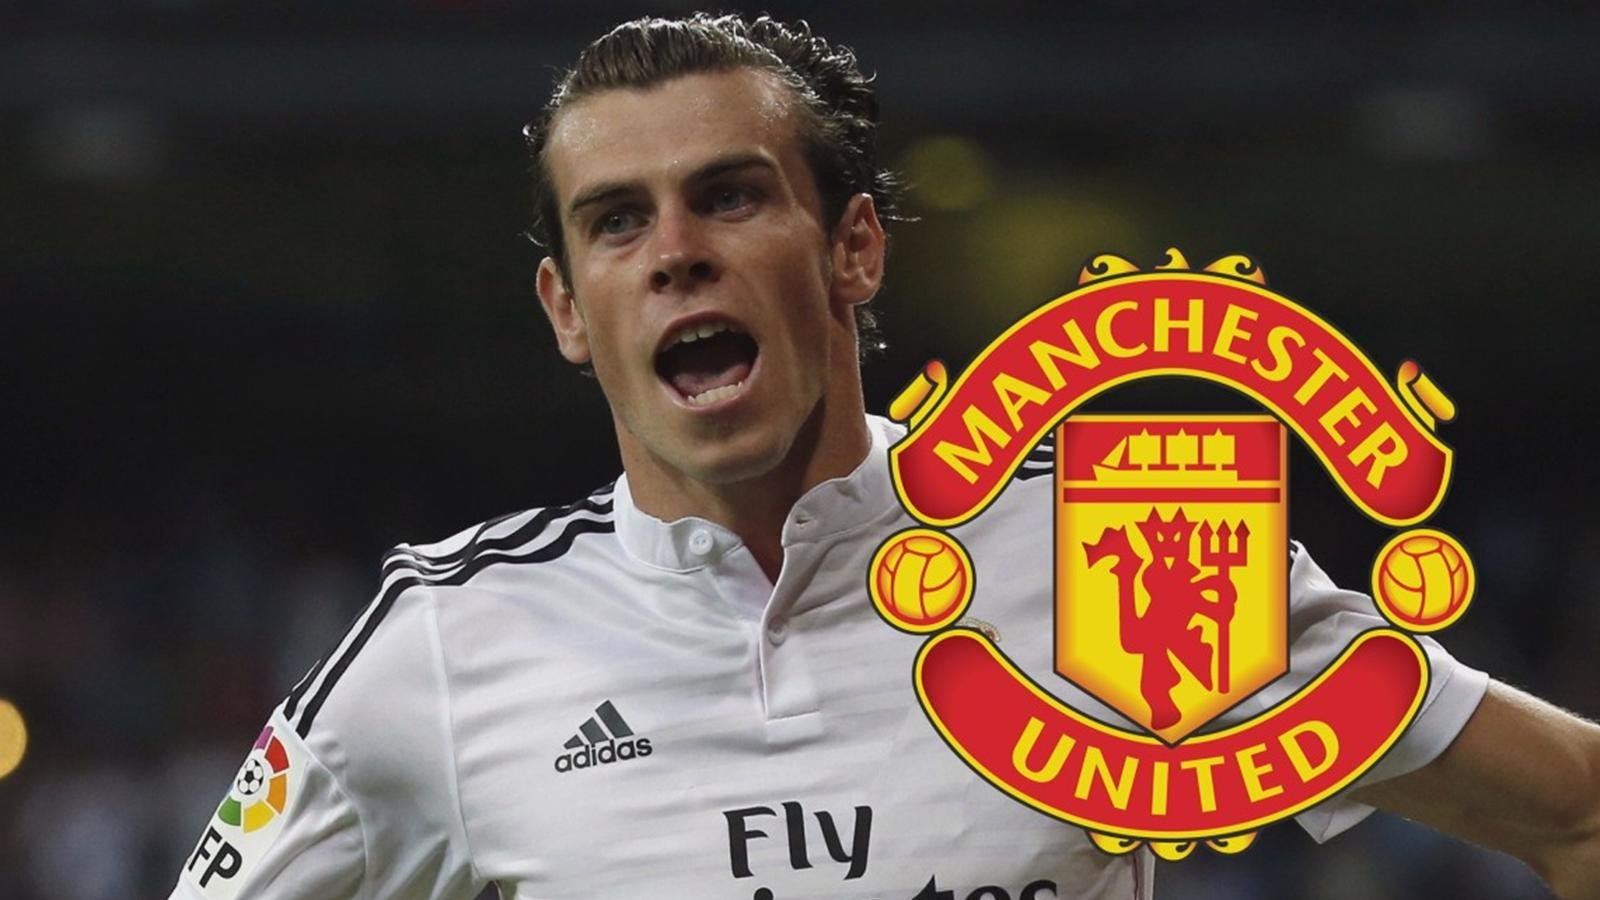 Manchester United Could Seal Deal For Gareth Bale This